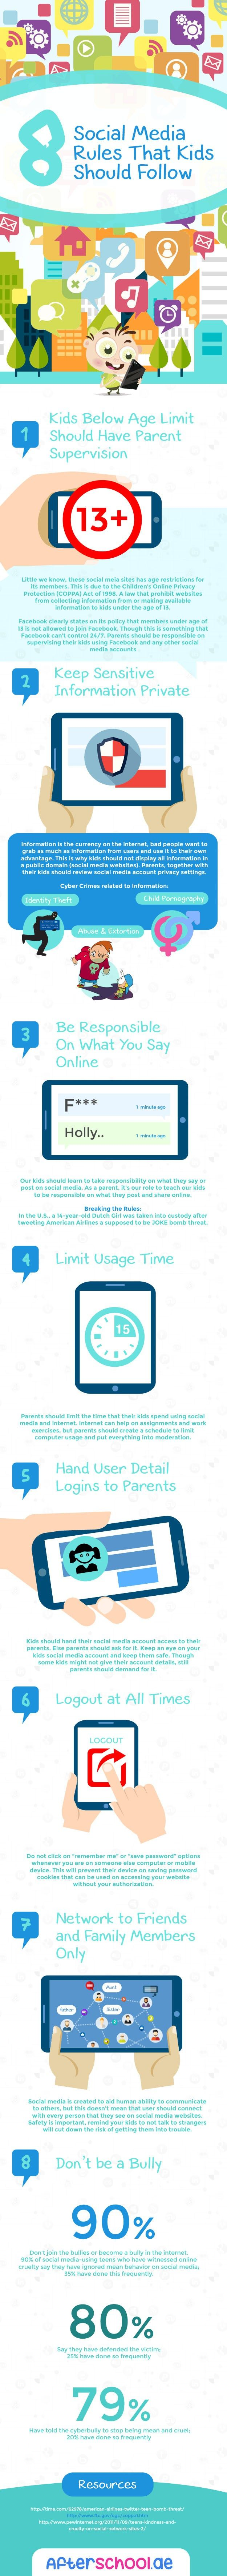 8 Social Media Rules Kids Should Follow (Infographic)  >  Afterschool.ae – the leading source of after school activities in UAE created an infographic that tackle social media rules kids need to follow: